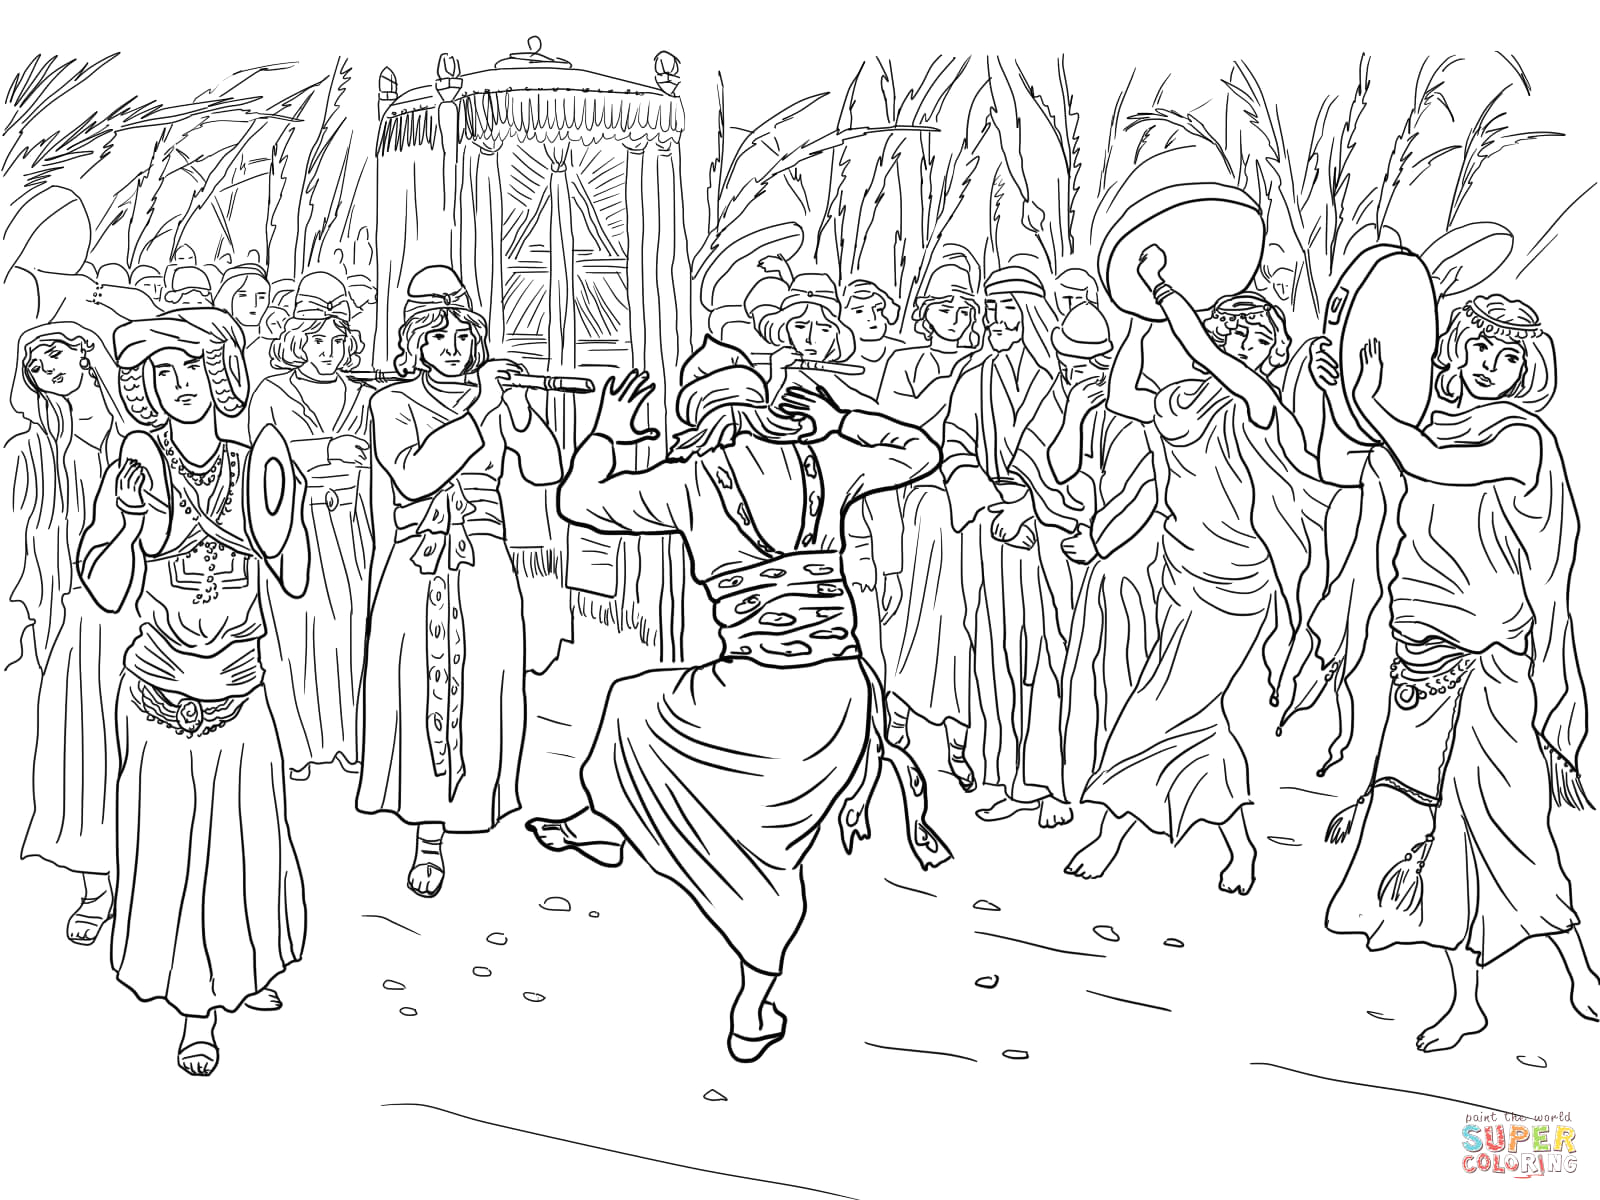 David Danced before the Lord Coloring Page King David Dancing before the Ark Of the Covenant Coloring